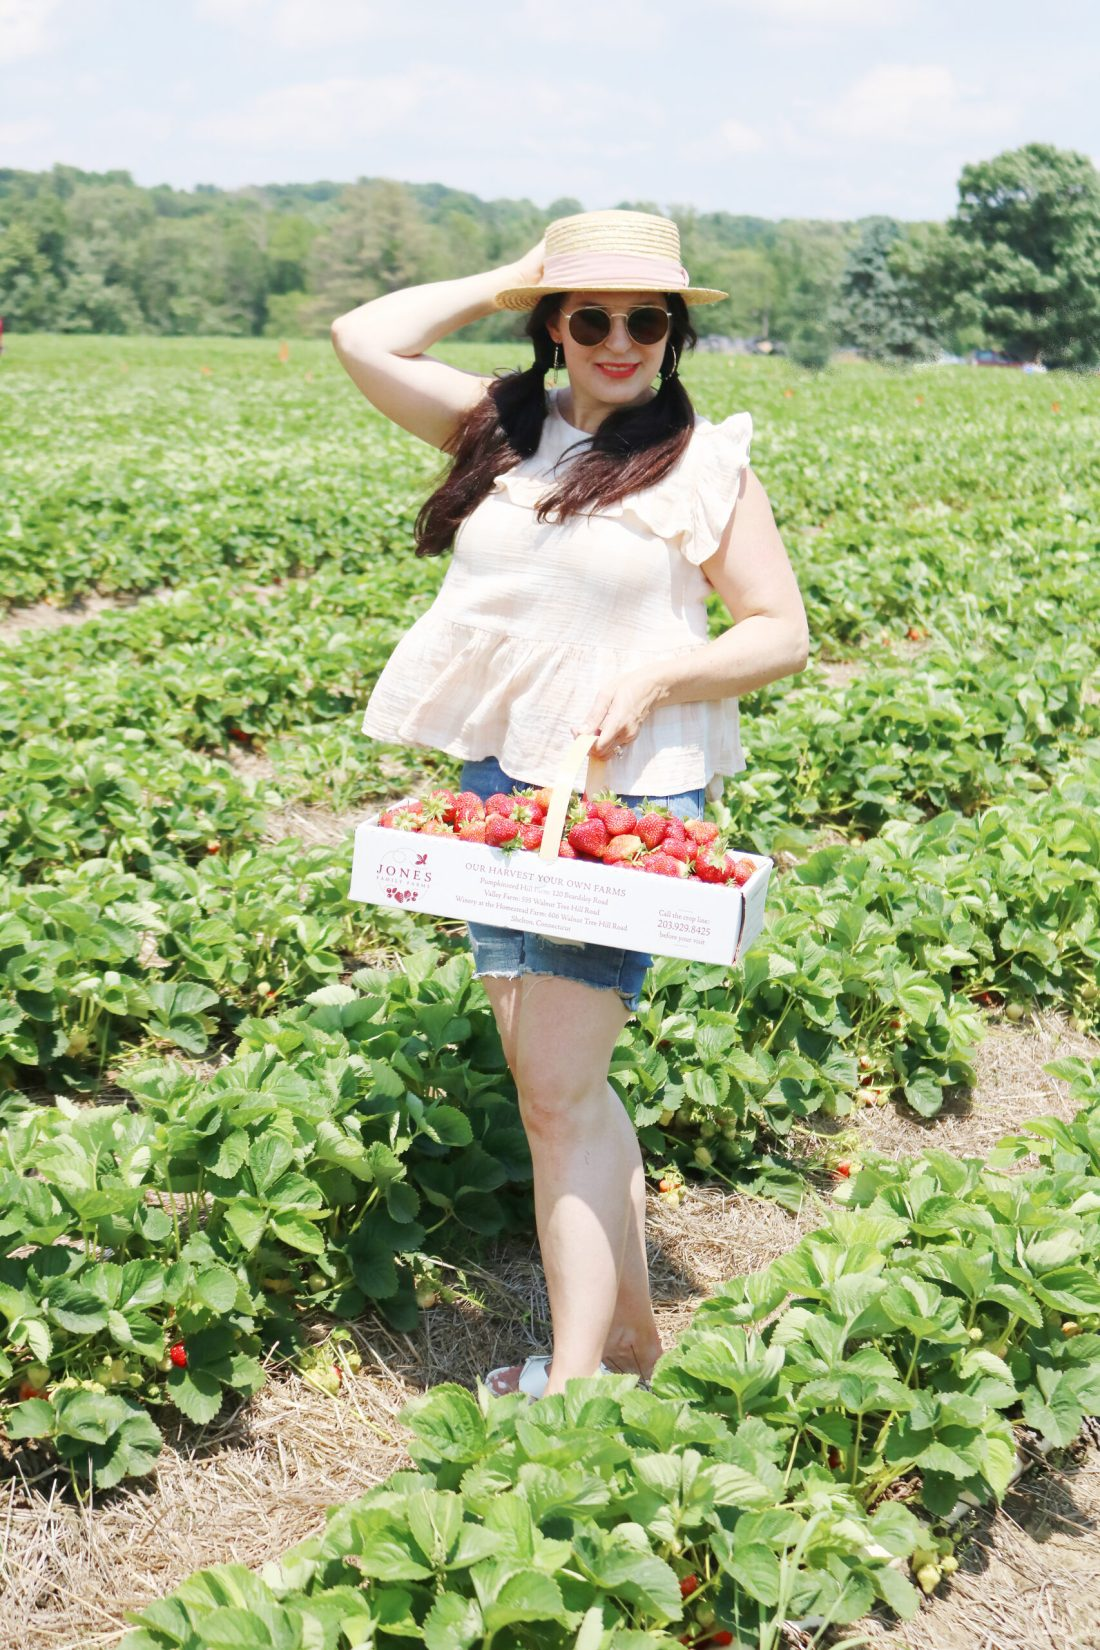 What to wear when picking strawberries? Make sure to wear a hat, flowy clothes to stay cool and easily bend down and open toe sandals that are okay to get dirty and wet || Darleen Meier Top Lifestyle CT Blogger #strawberryfieldsforever #darlingdarleen